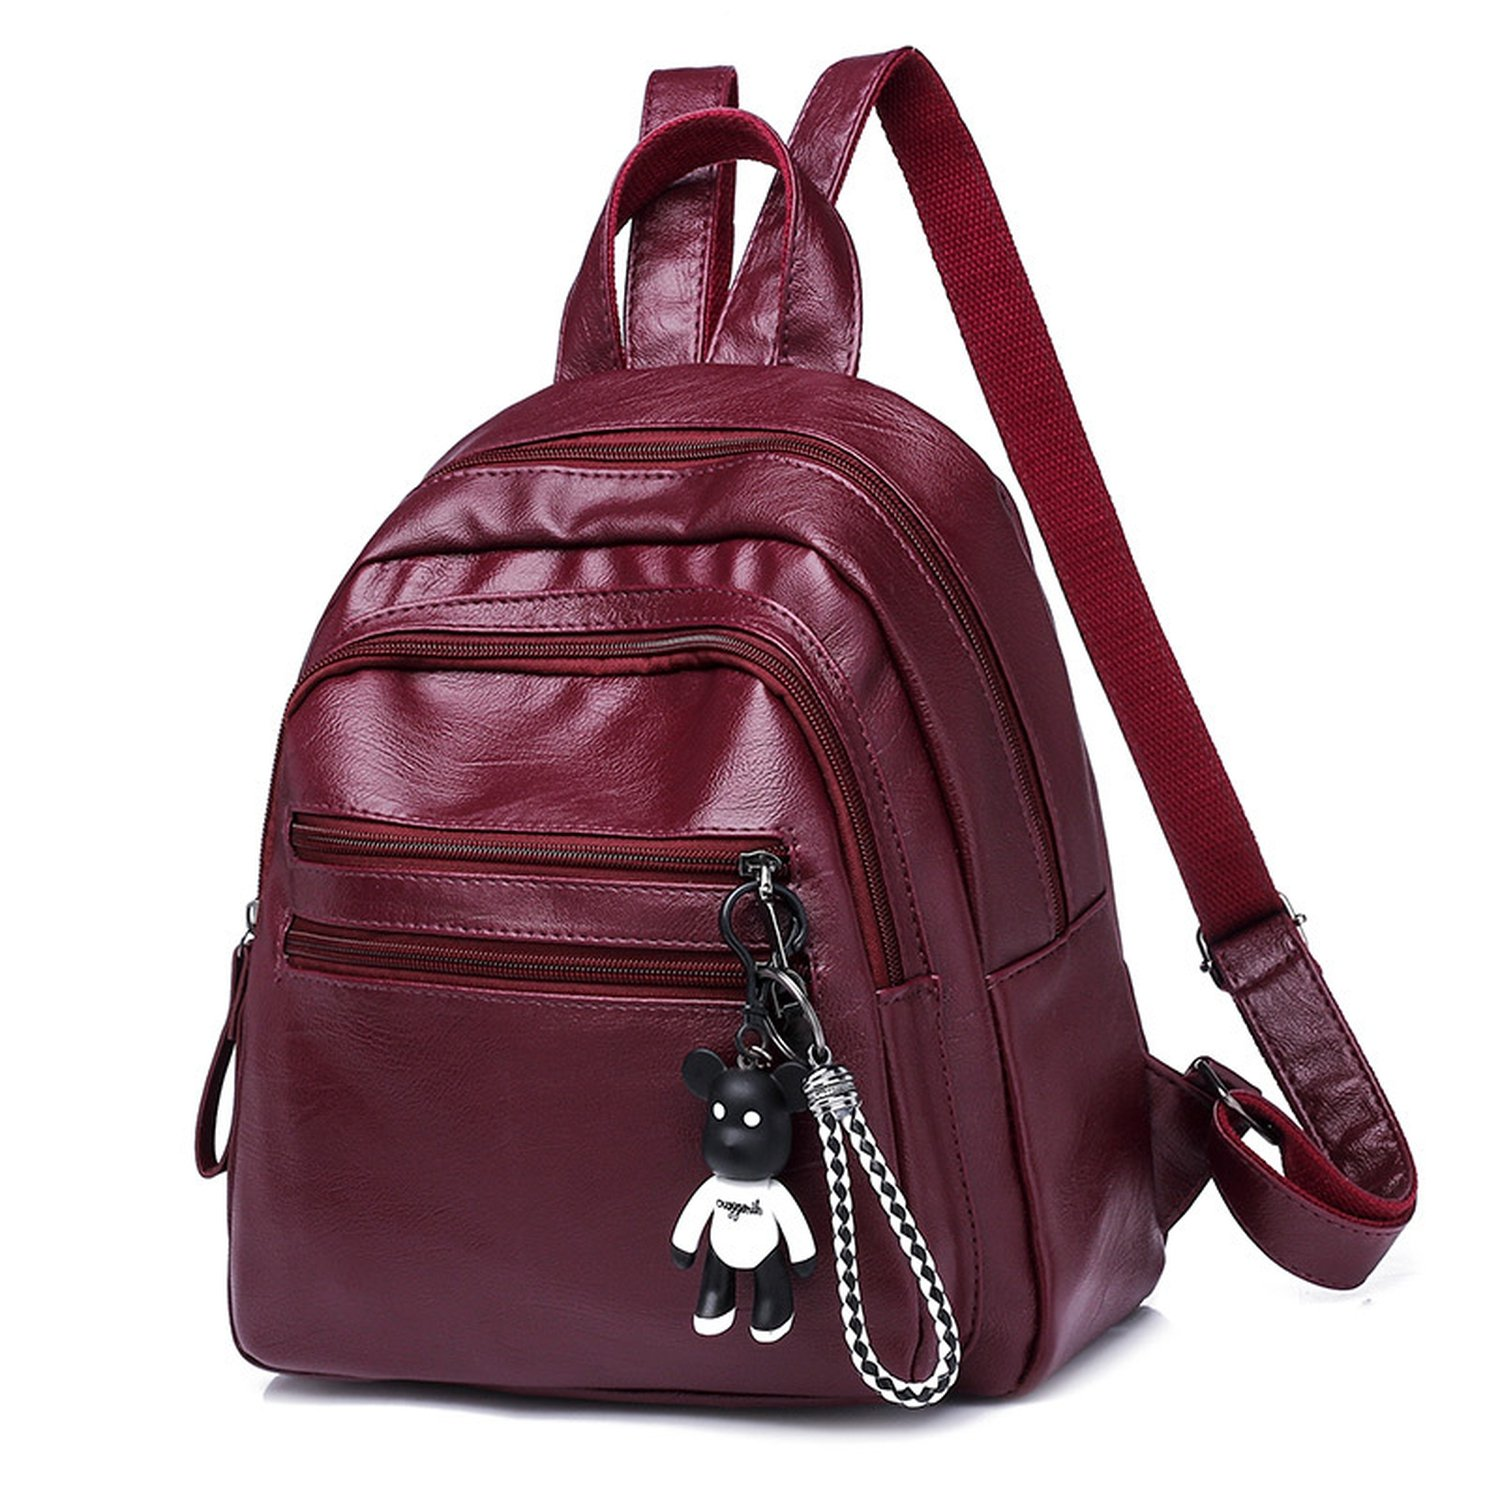 Leather Backpack for Girls, Waterproof Fashion Backpack, Casual Daypack,Red wine by Toping Fine basic-multipurpose-backpacks (Image #1)